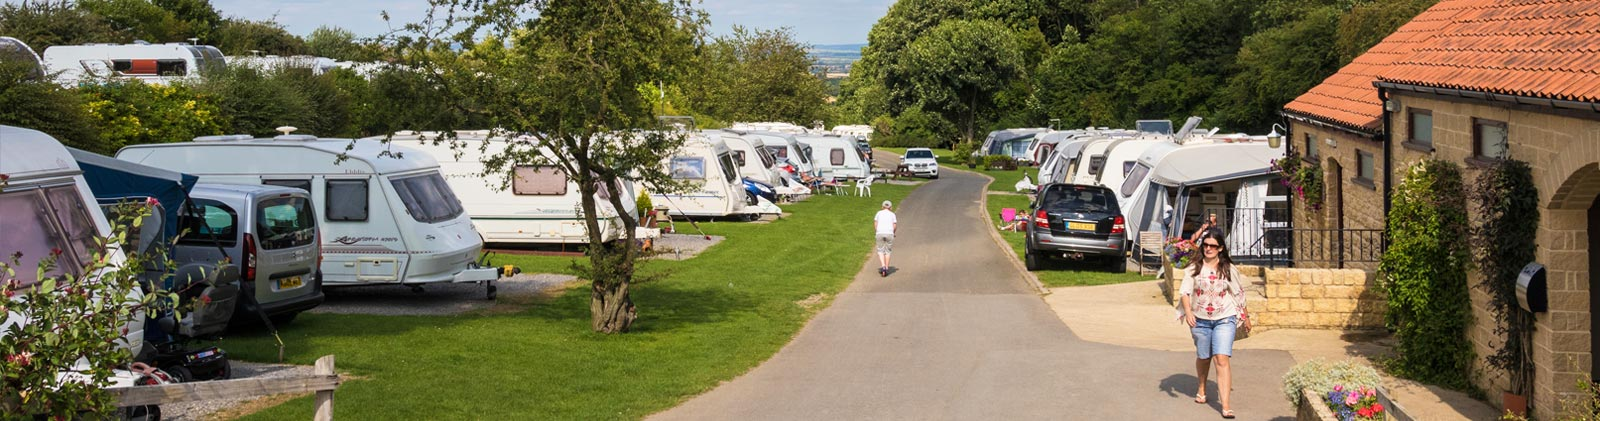 Golden Square caravan site in North Yorkshire